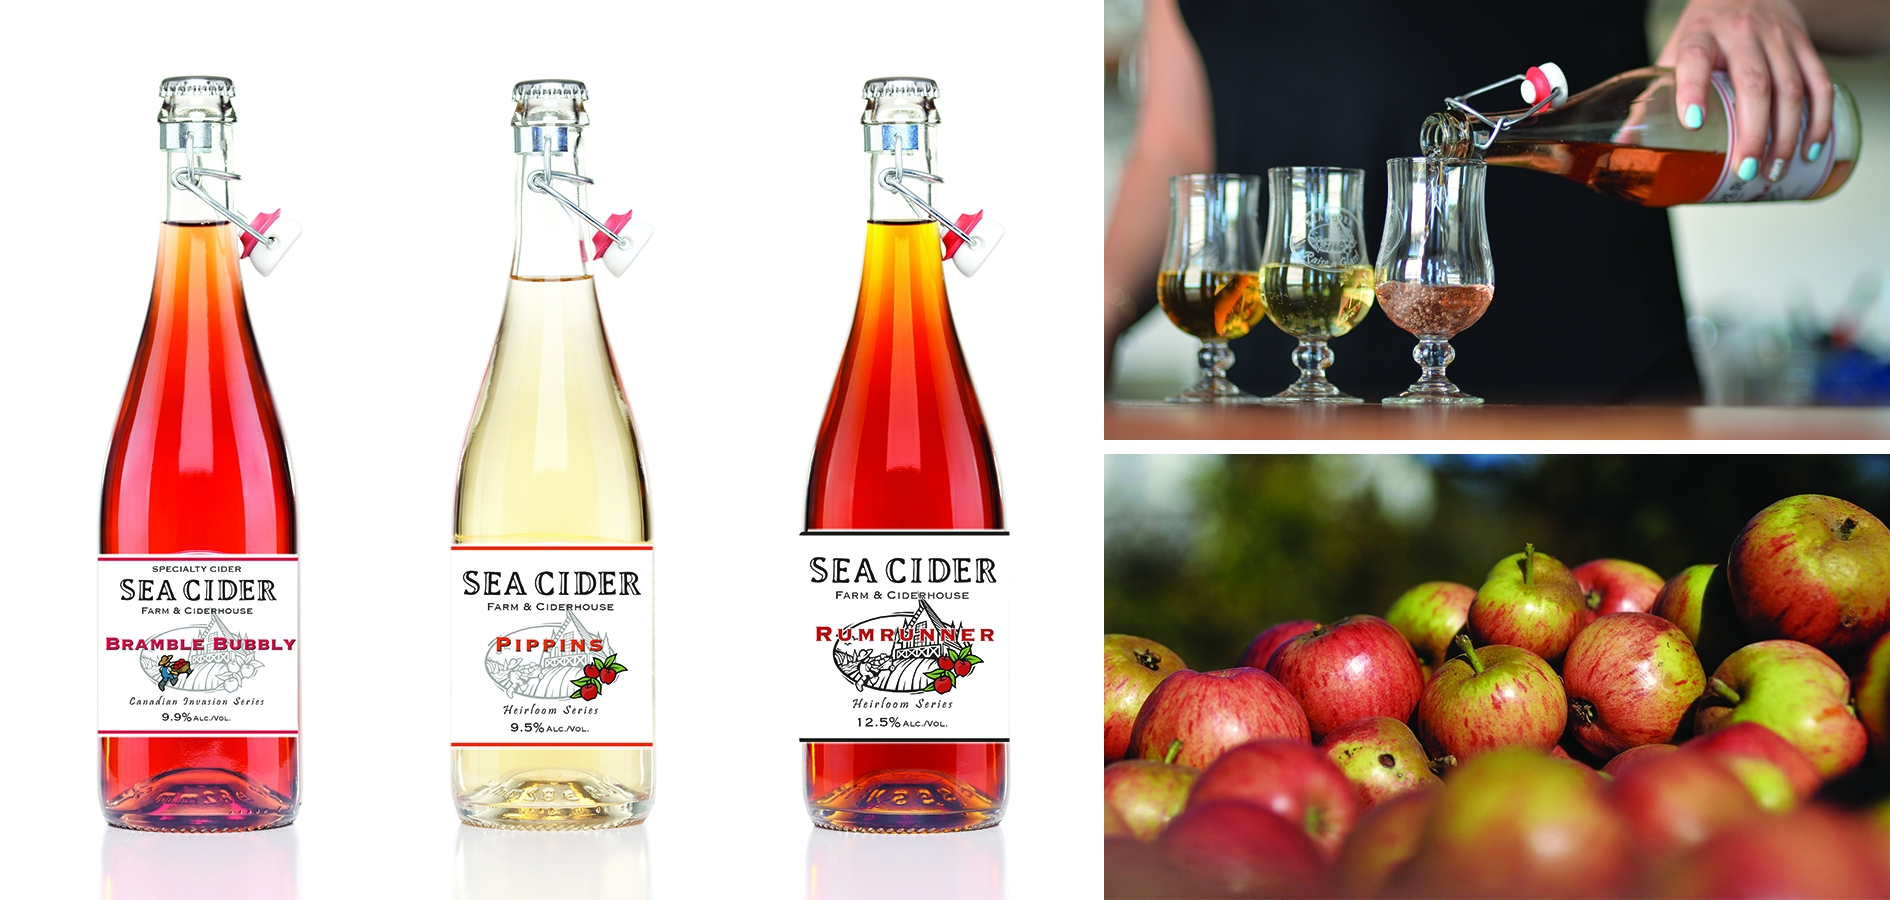 Sea Cider Products image 2017